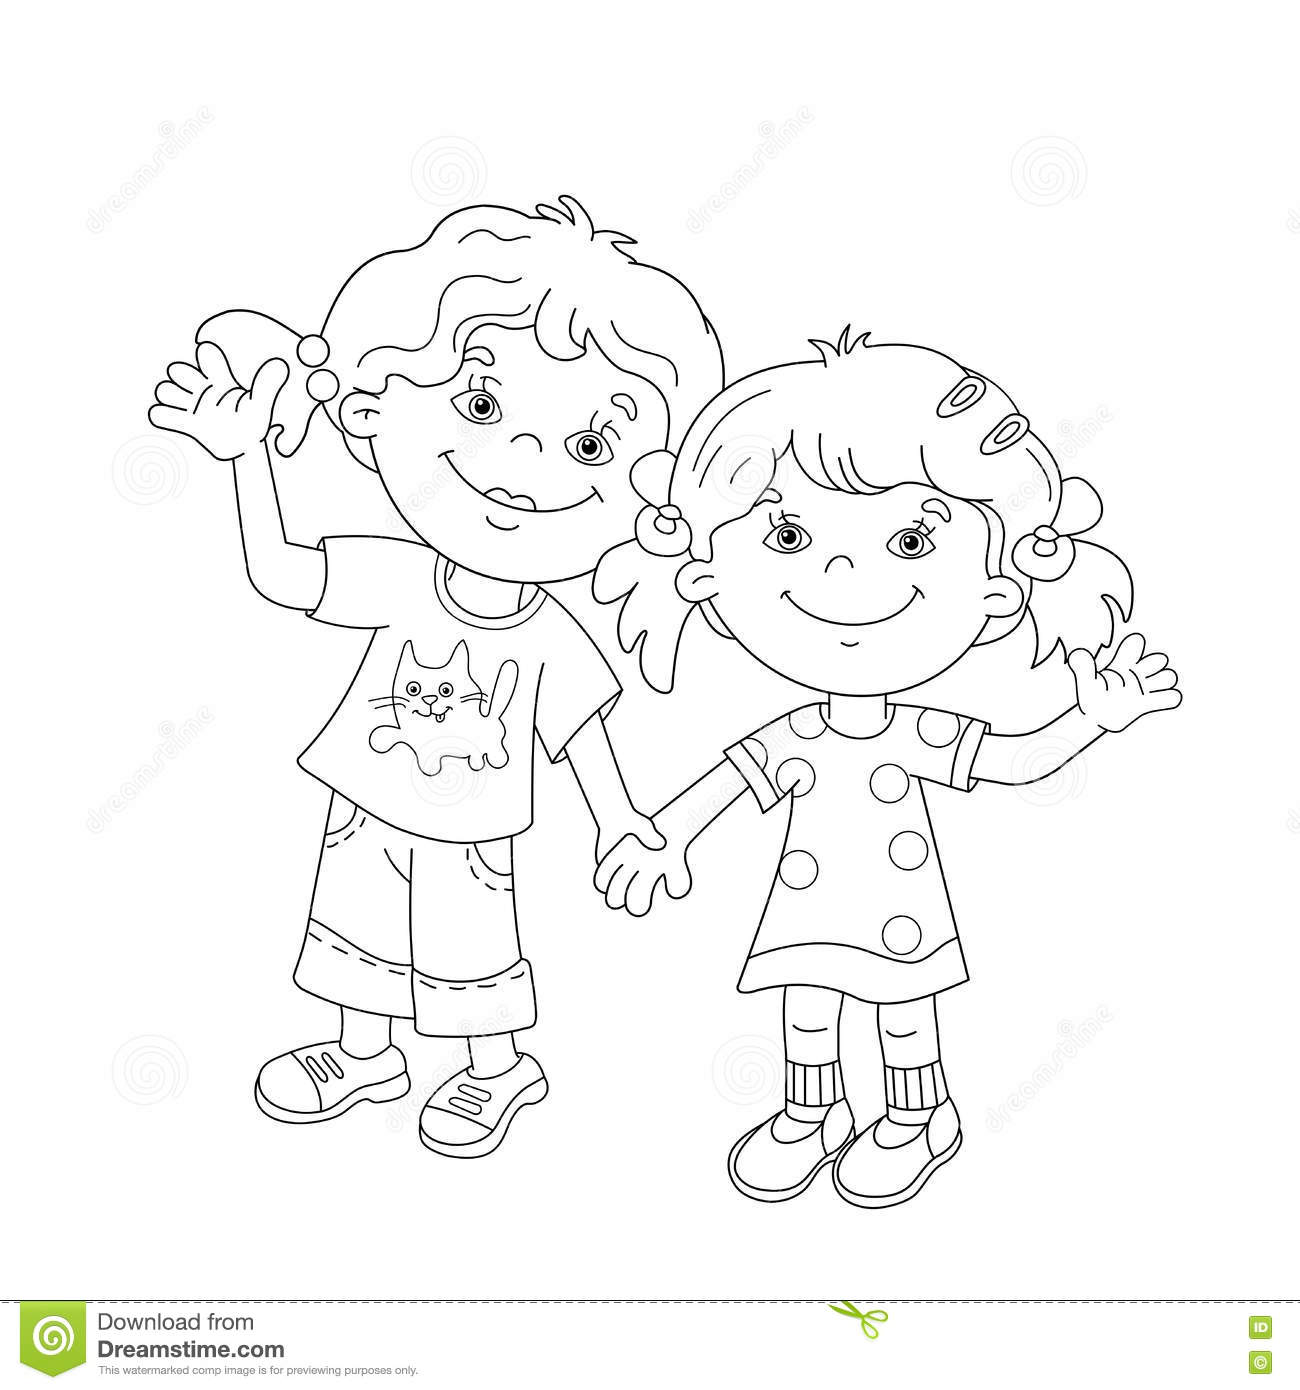 Coloring Page Outline Of Cartoon Girls Holding Hands Stock